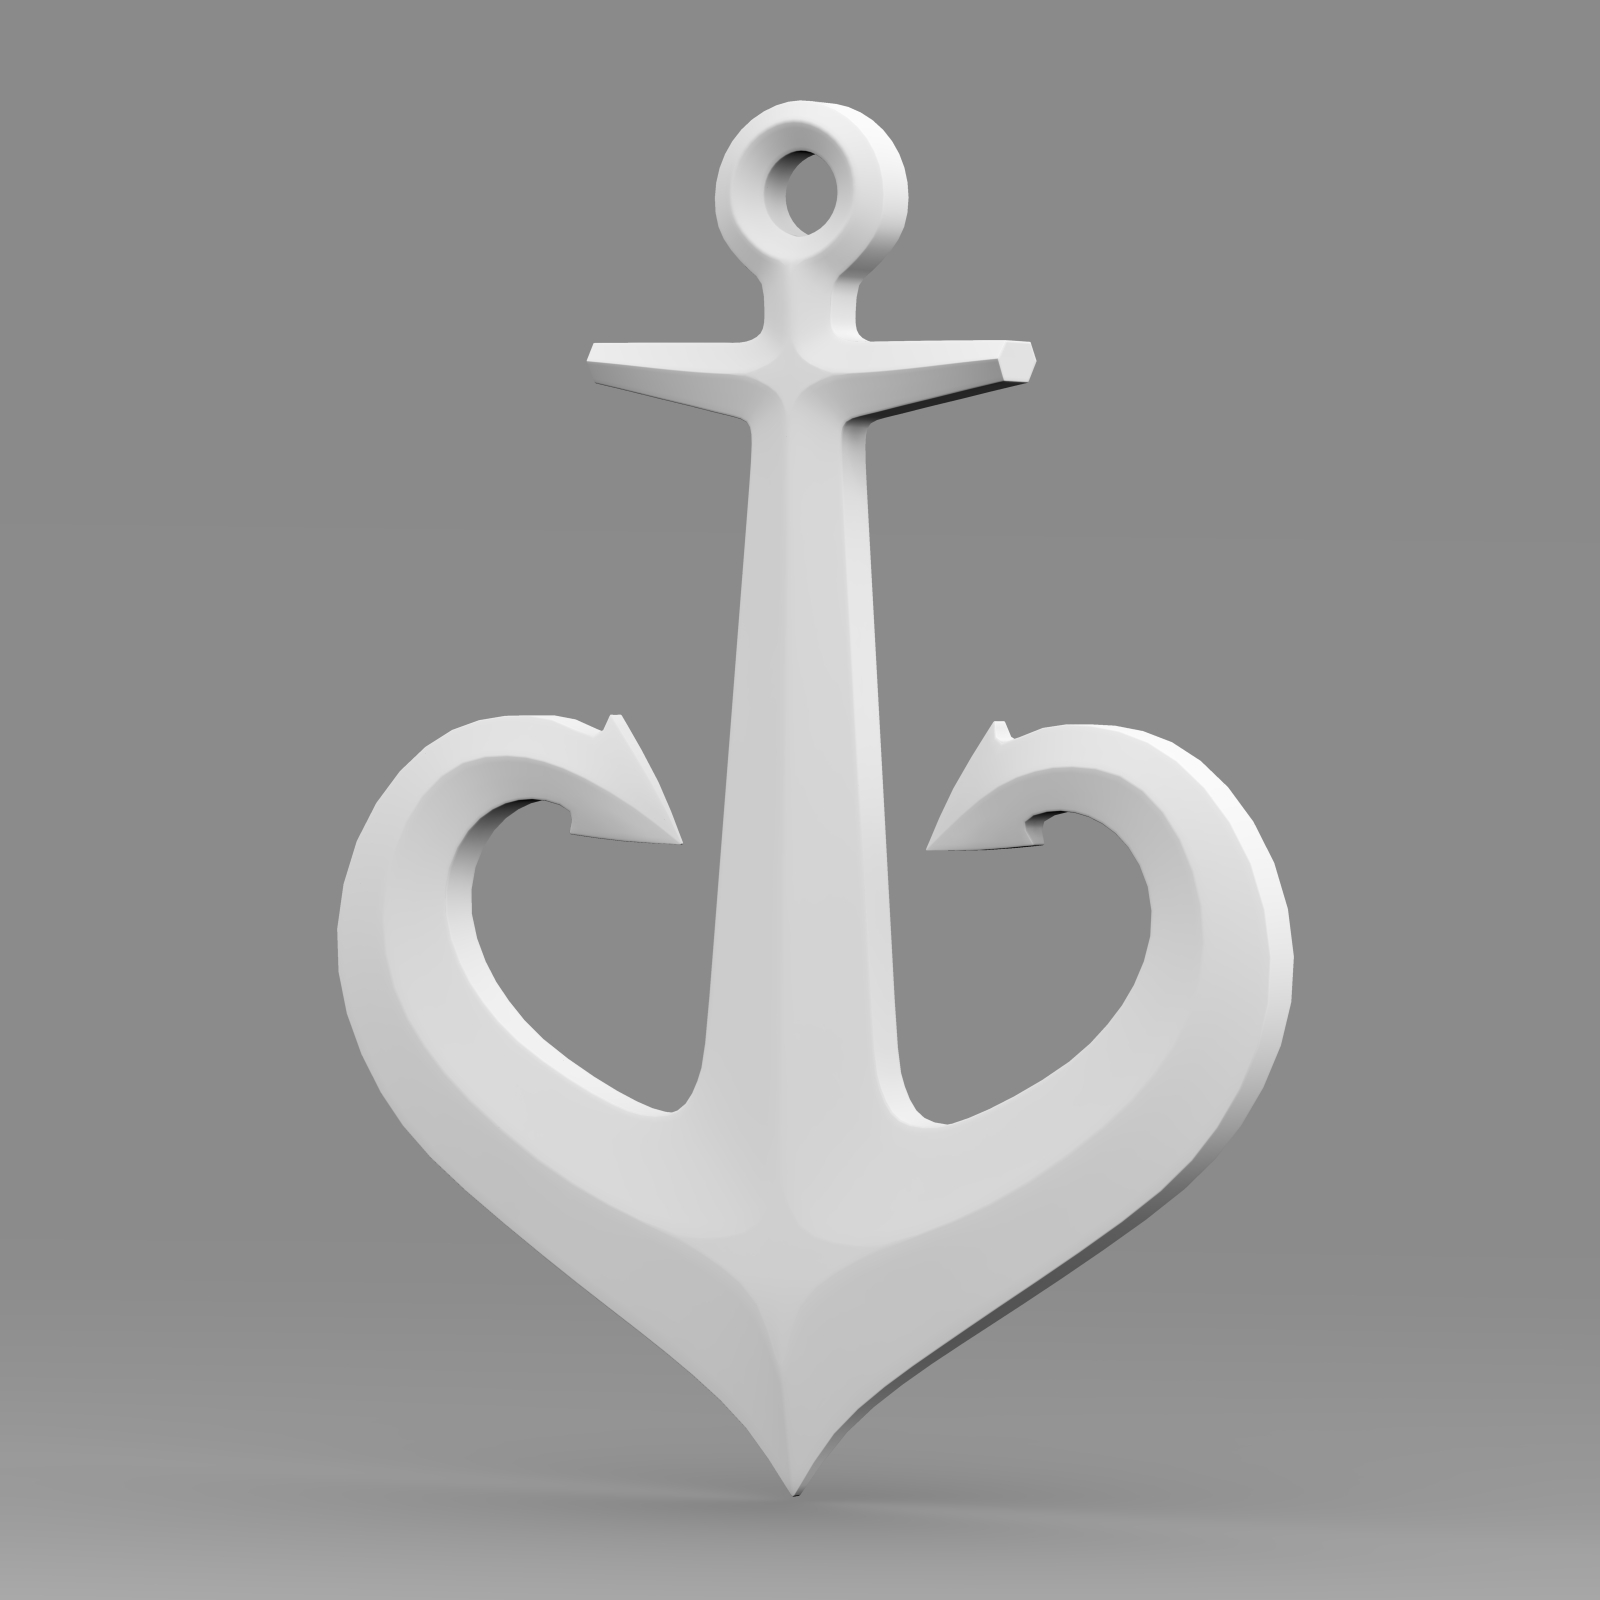 anchor 1 3d model 3ds fbx c4d lwo ma mb hrc xsi obj 223621